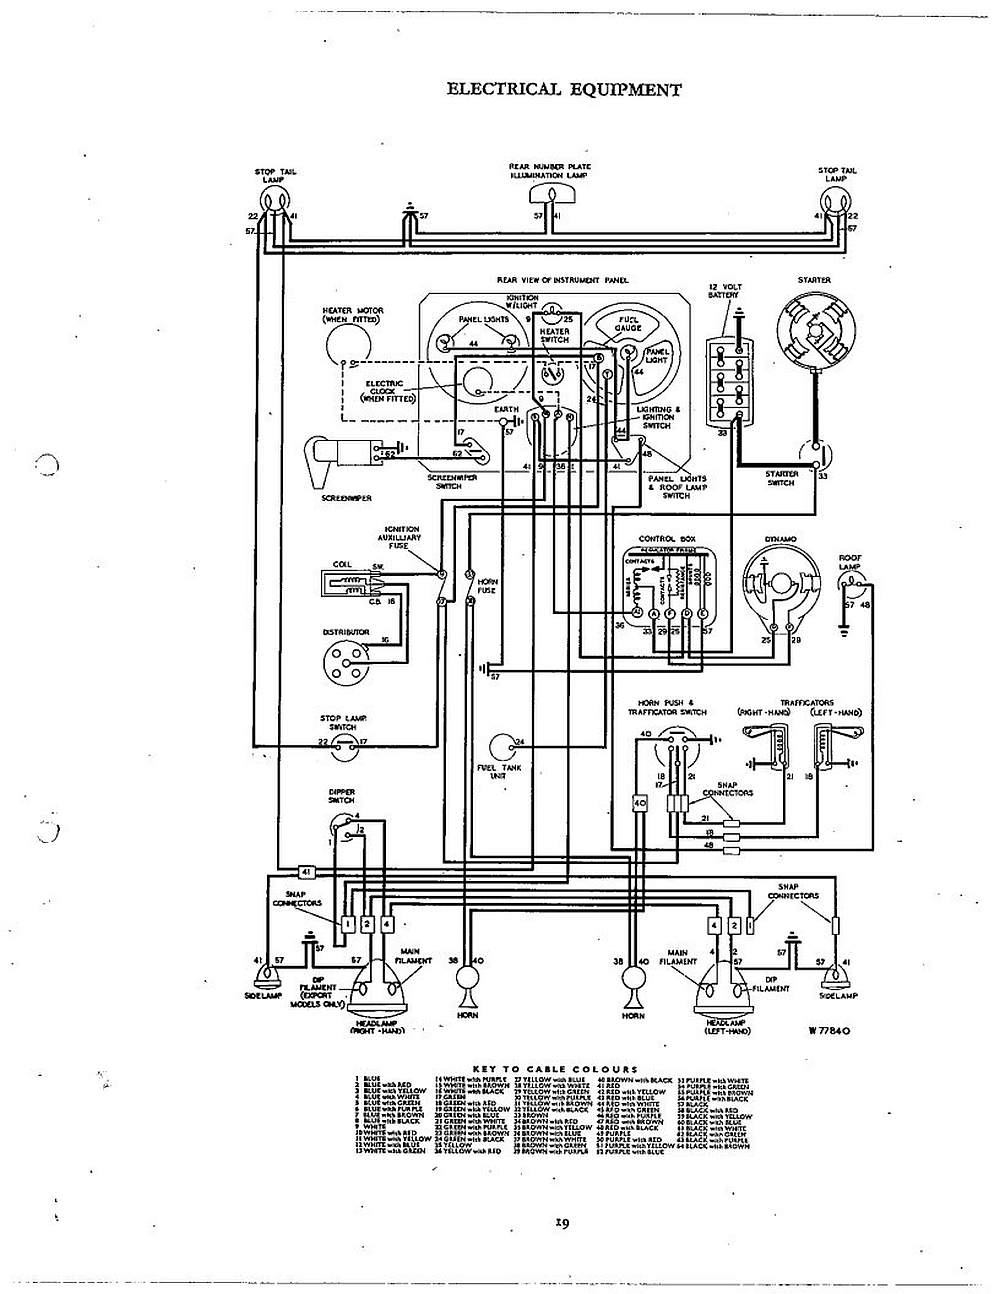 Triumph Mayflower wiring diagram tr6 wiring diagram 1974 triumph tr6 wiring diagram \u2022 wiring 1965 Triumph Spitfire MK2 Wiring-Diagram at reclaimingppi.co